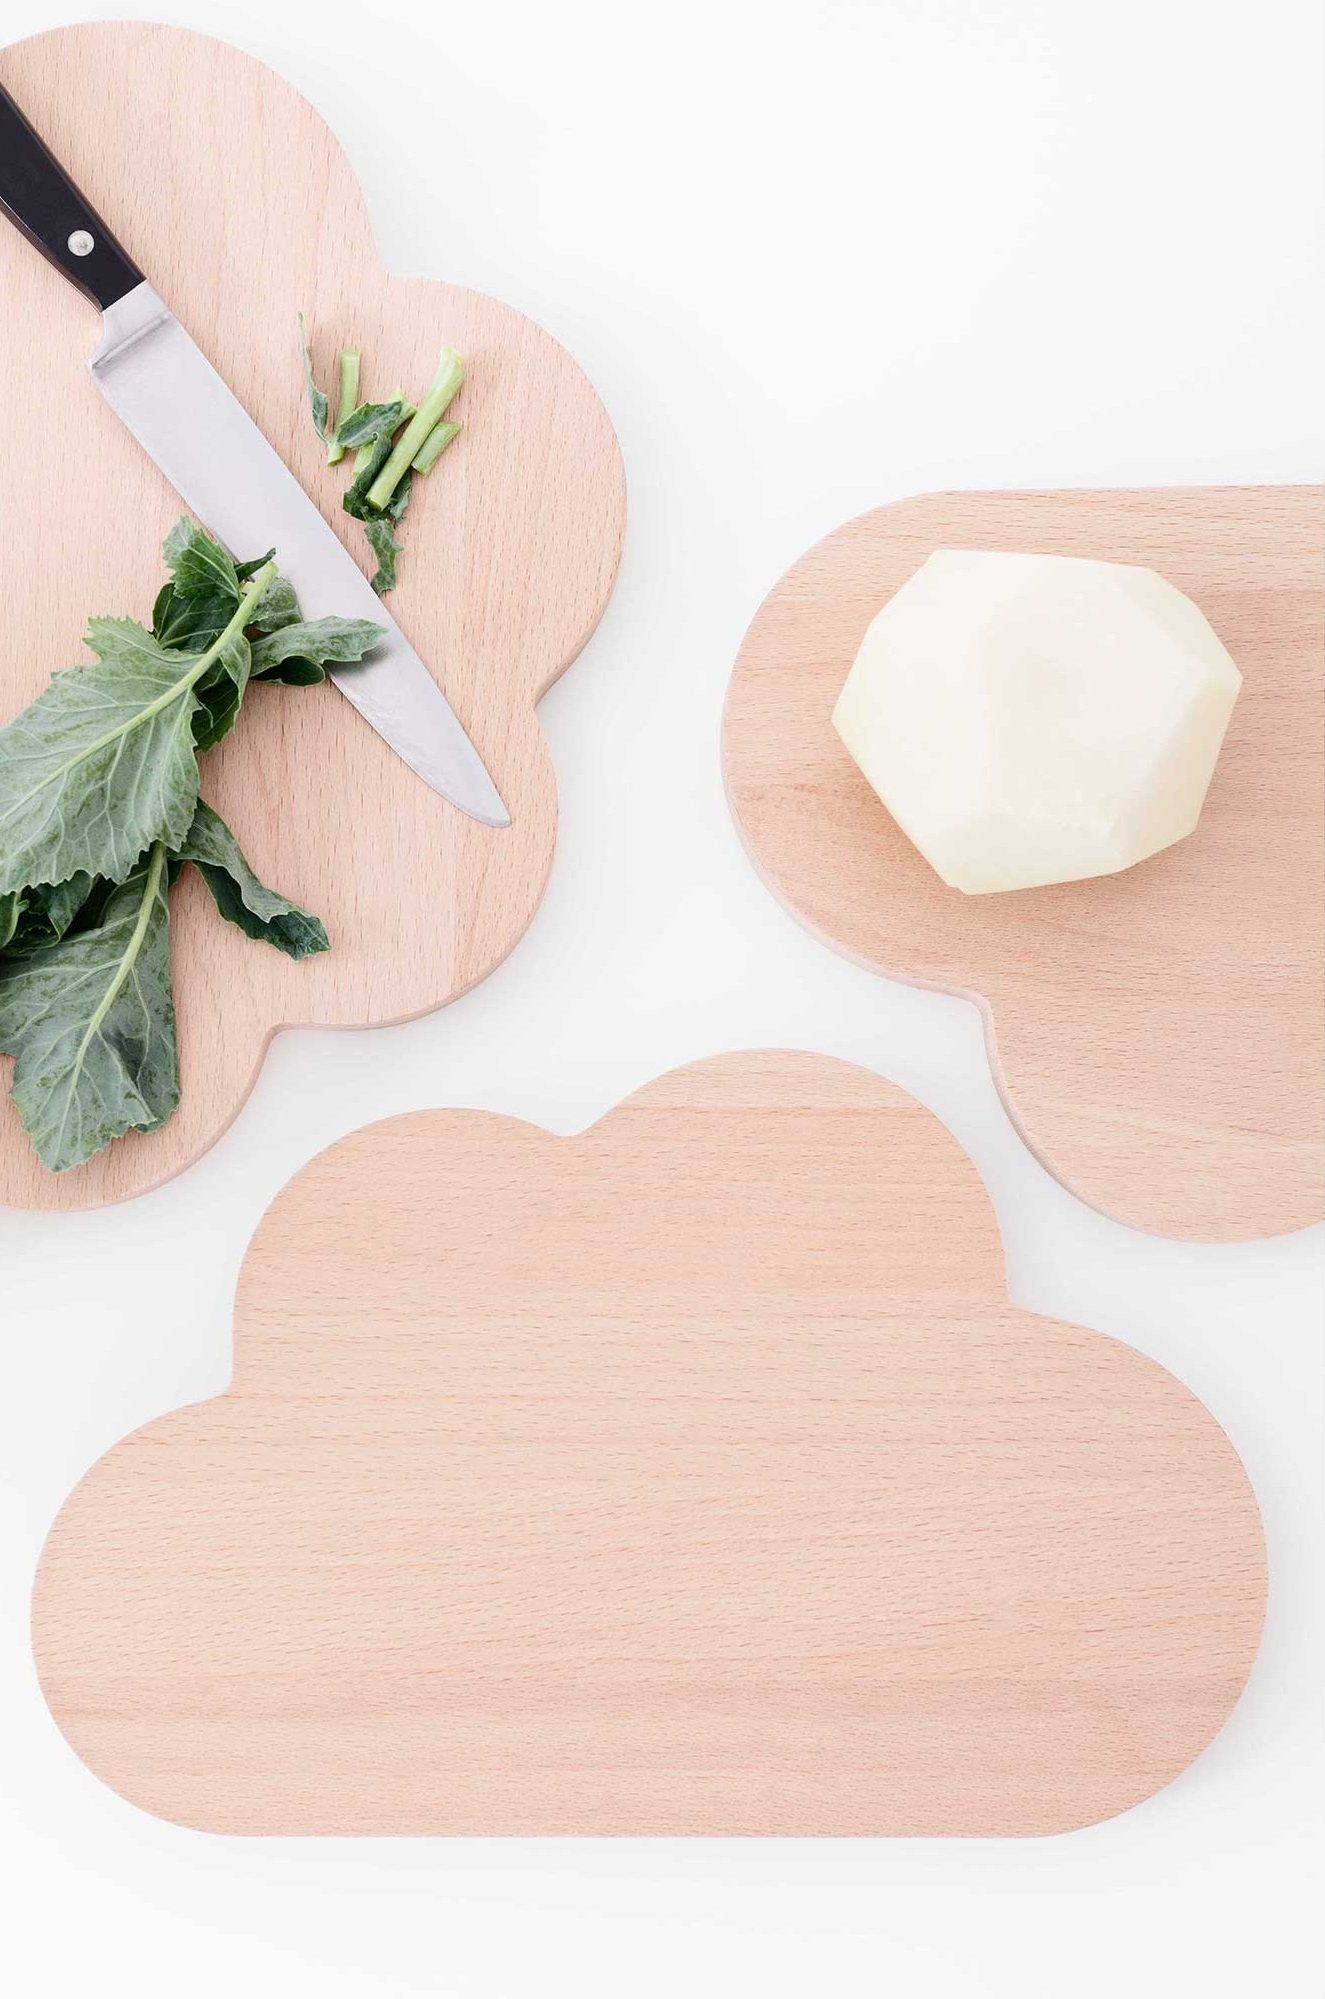 Cloud Cutting Board by Snug